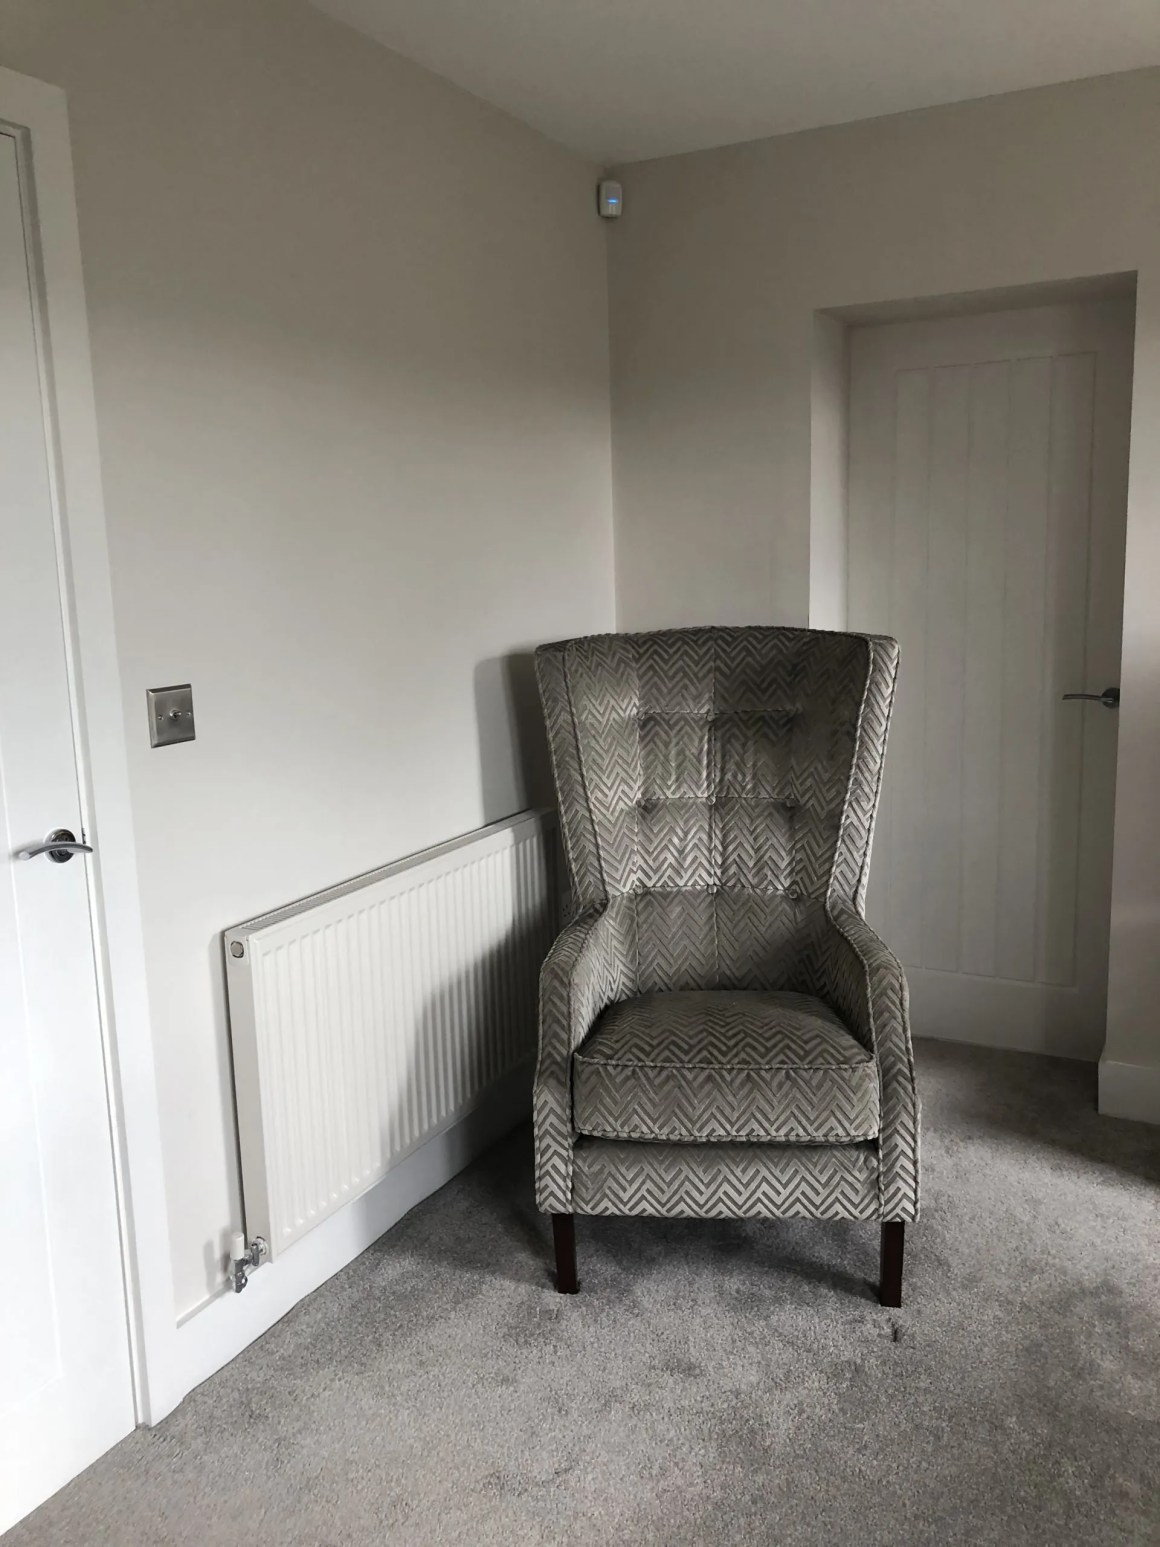 large grey velvet chair next to a radiator